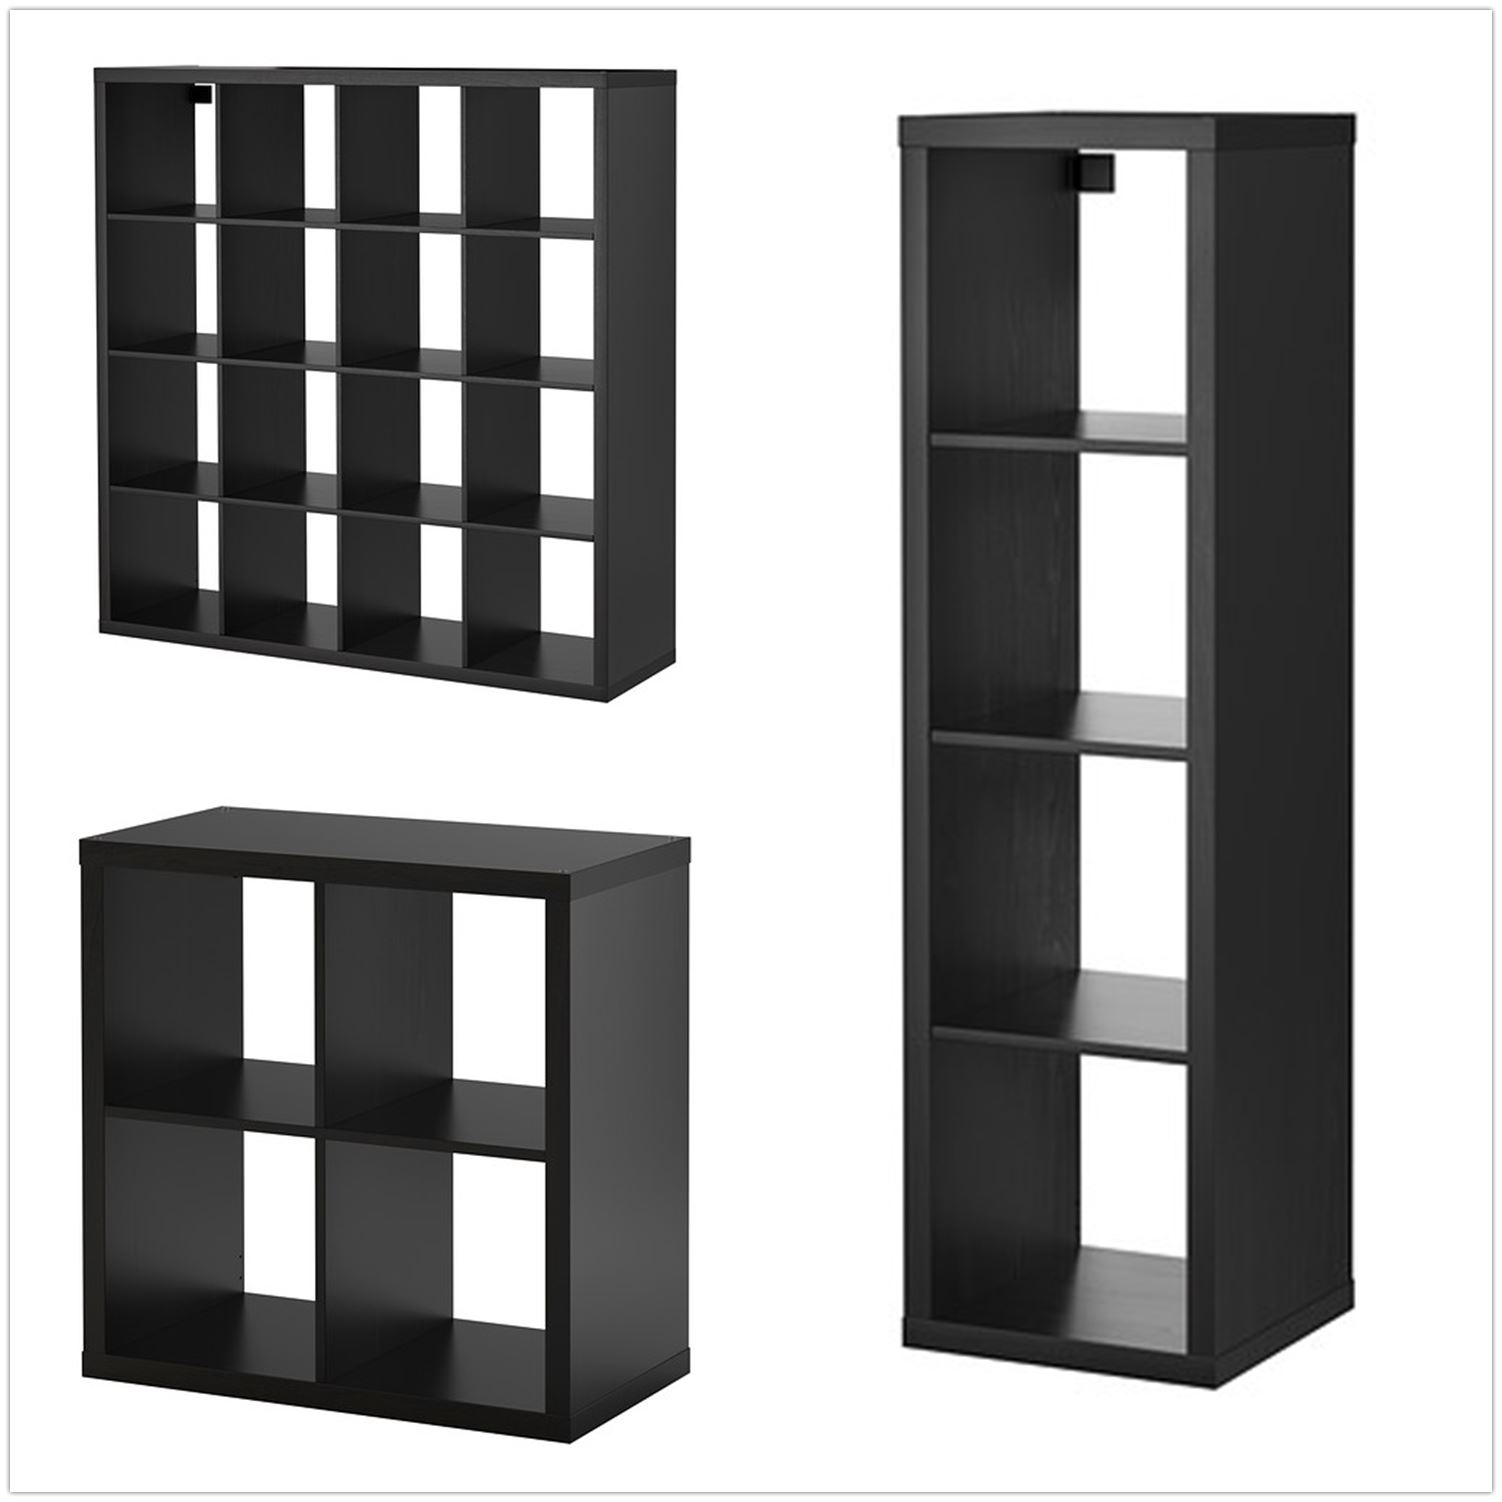 Image Result For Ikea Cubby Shelves